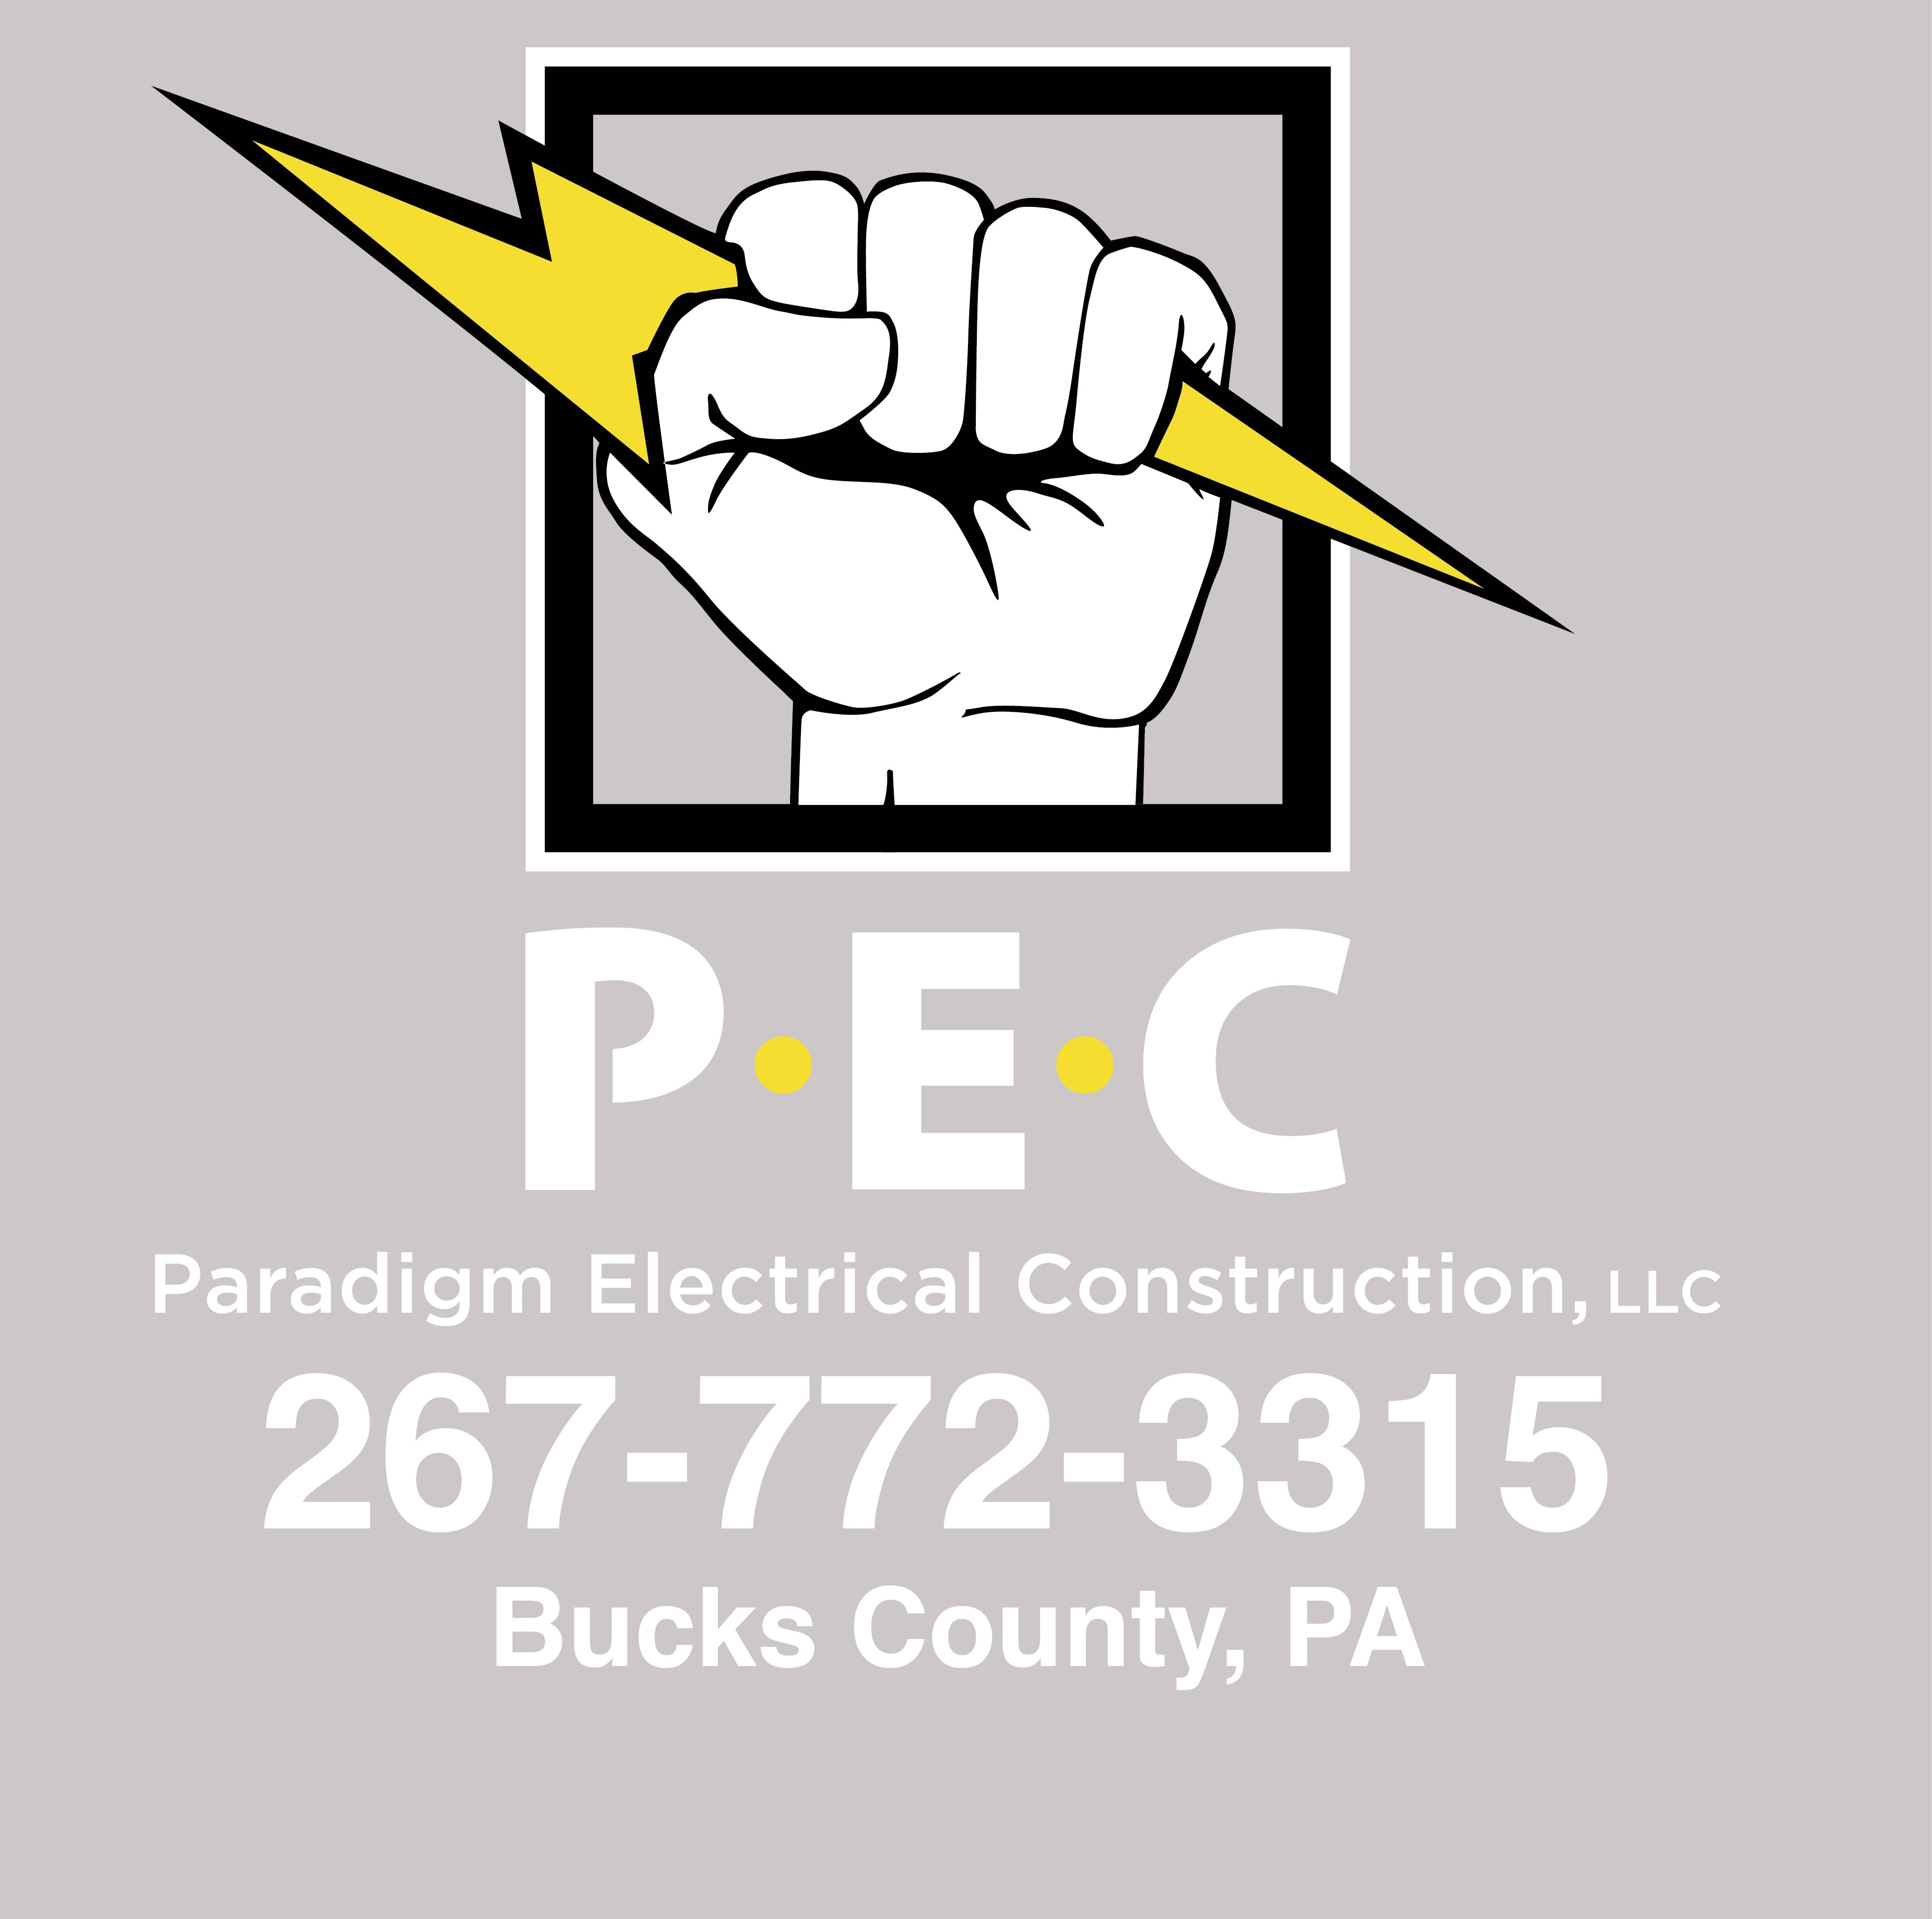 Paradigm Electrical Construction print